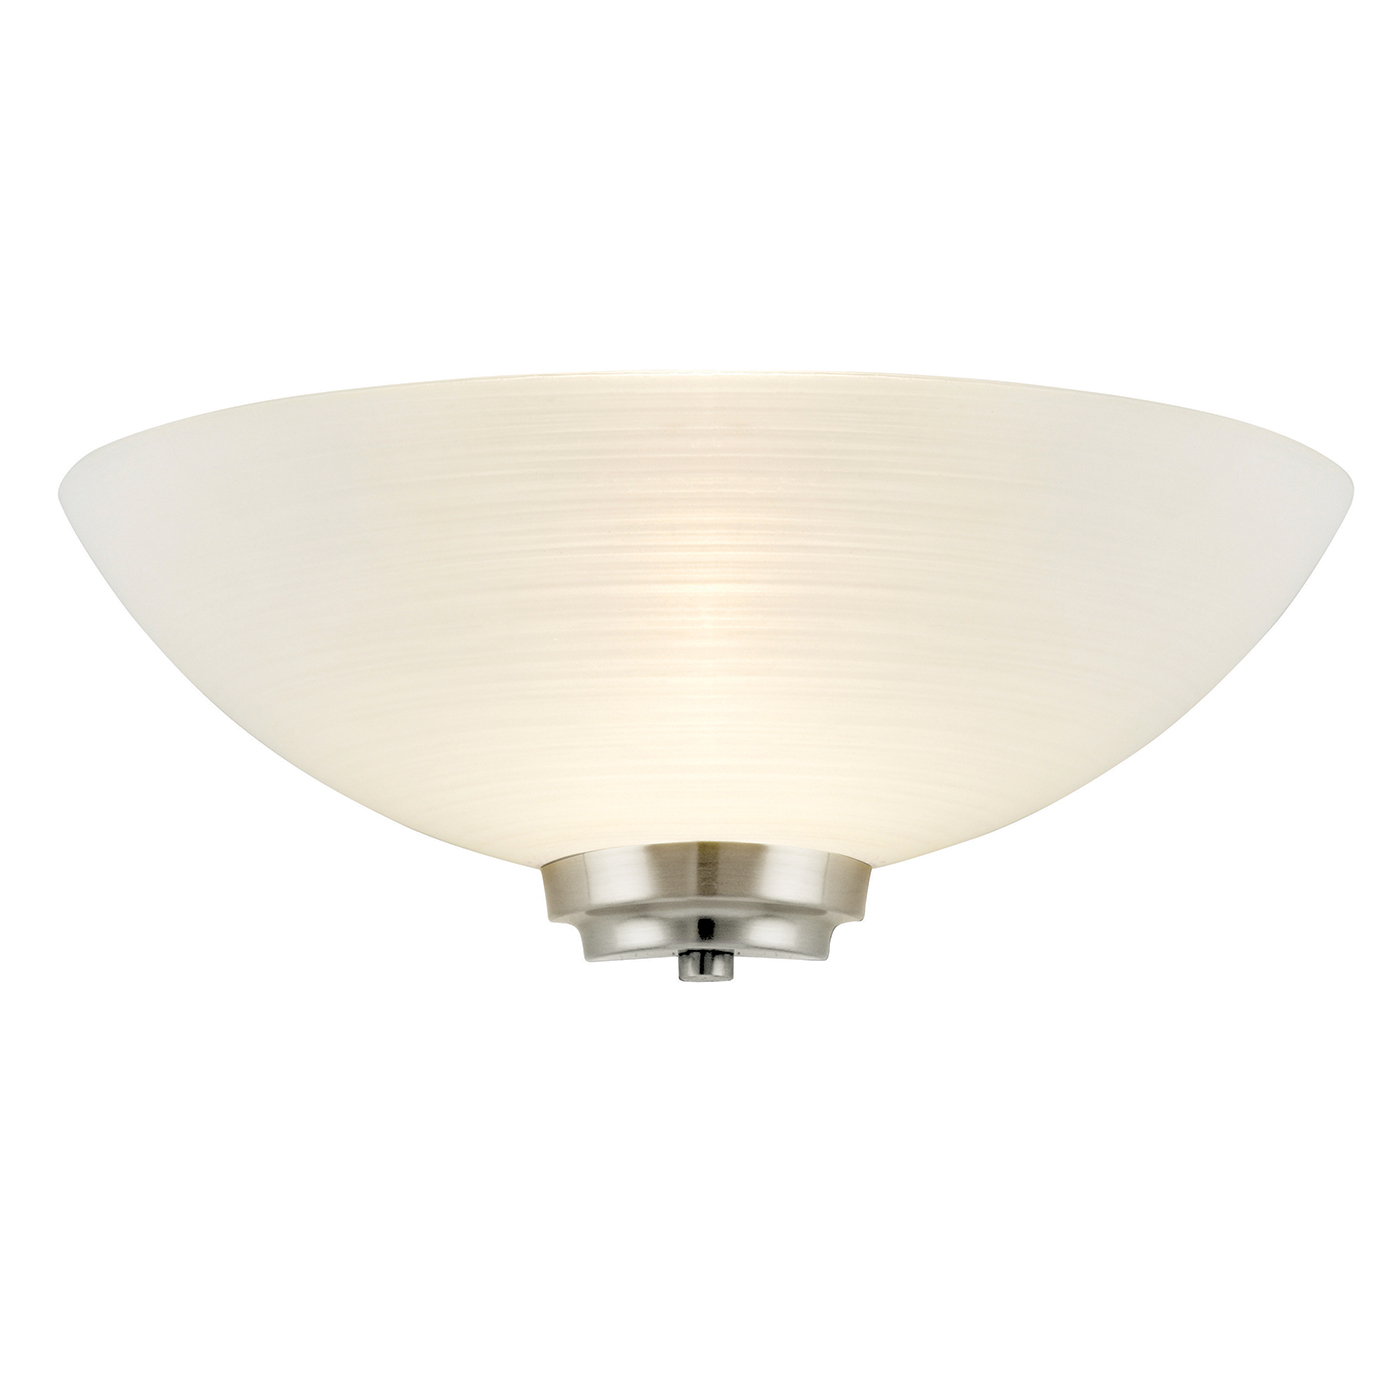 Endon Welles 1lt wall light 60W White painted glass line pattern & satin chrome Thumbnail 1